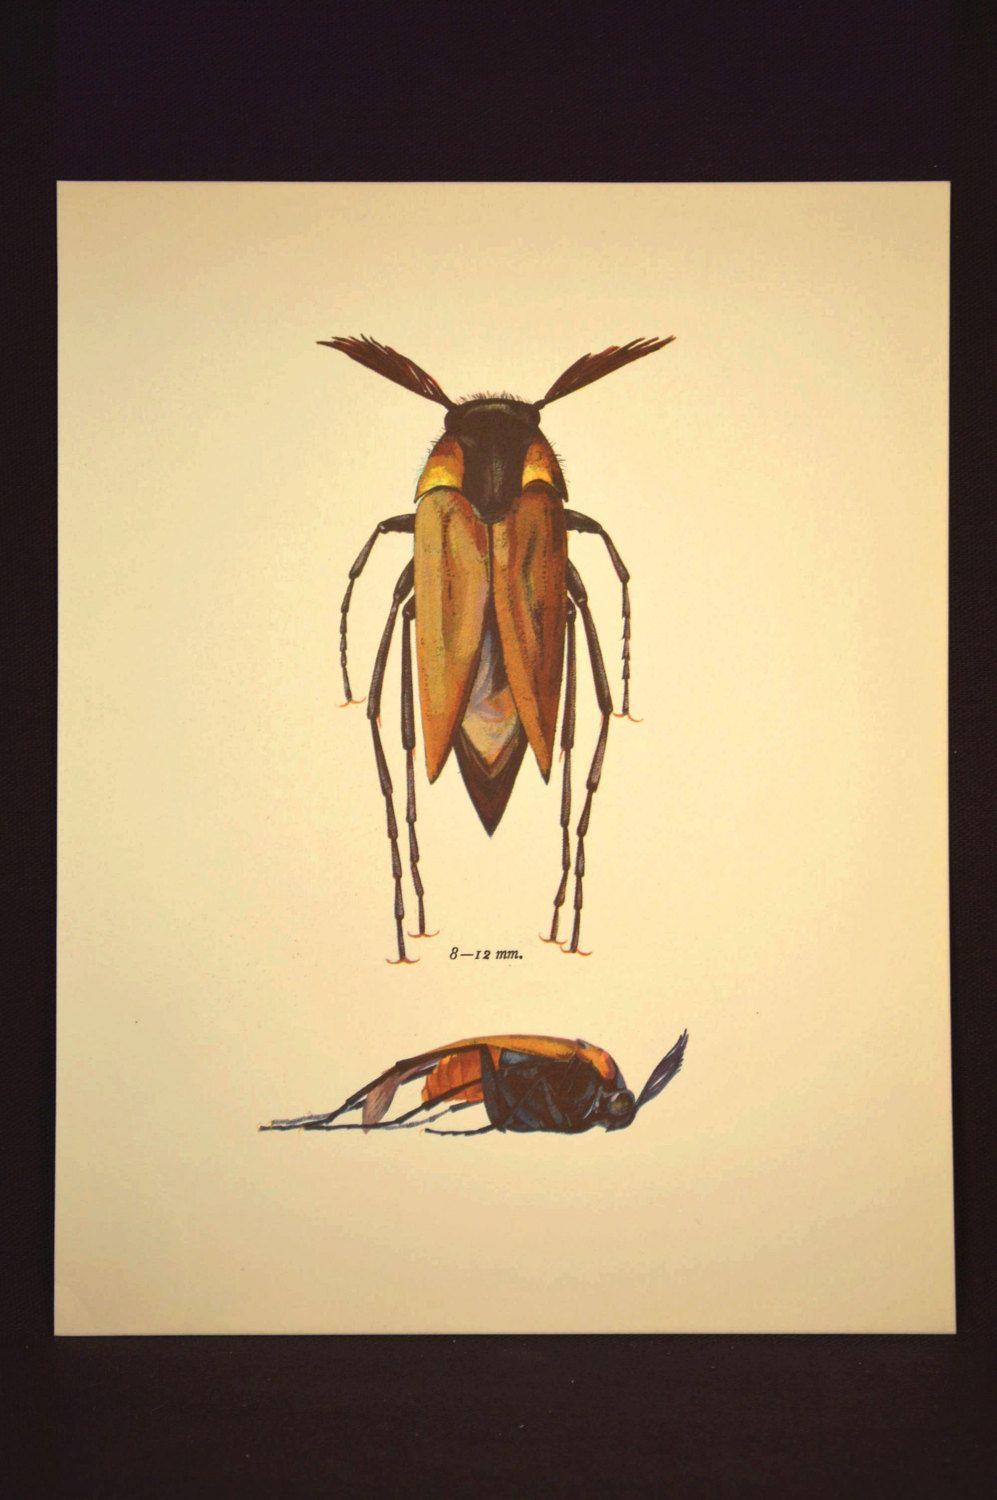 Nature Wall Decor Insect Print Beetle Decor Art Bug Vintage | Nature ...